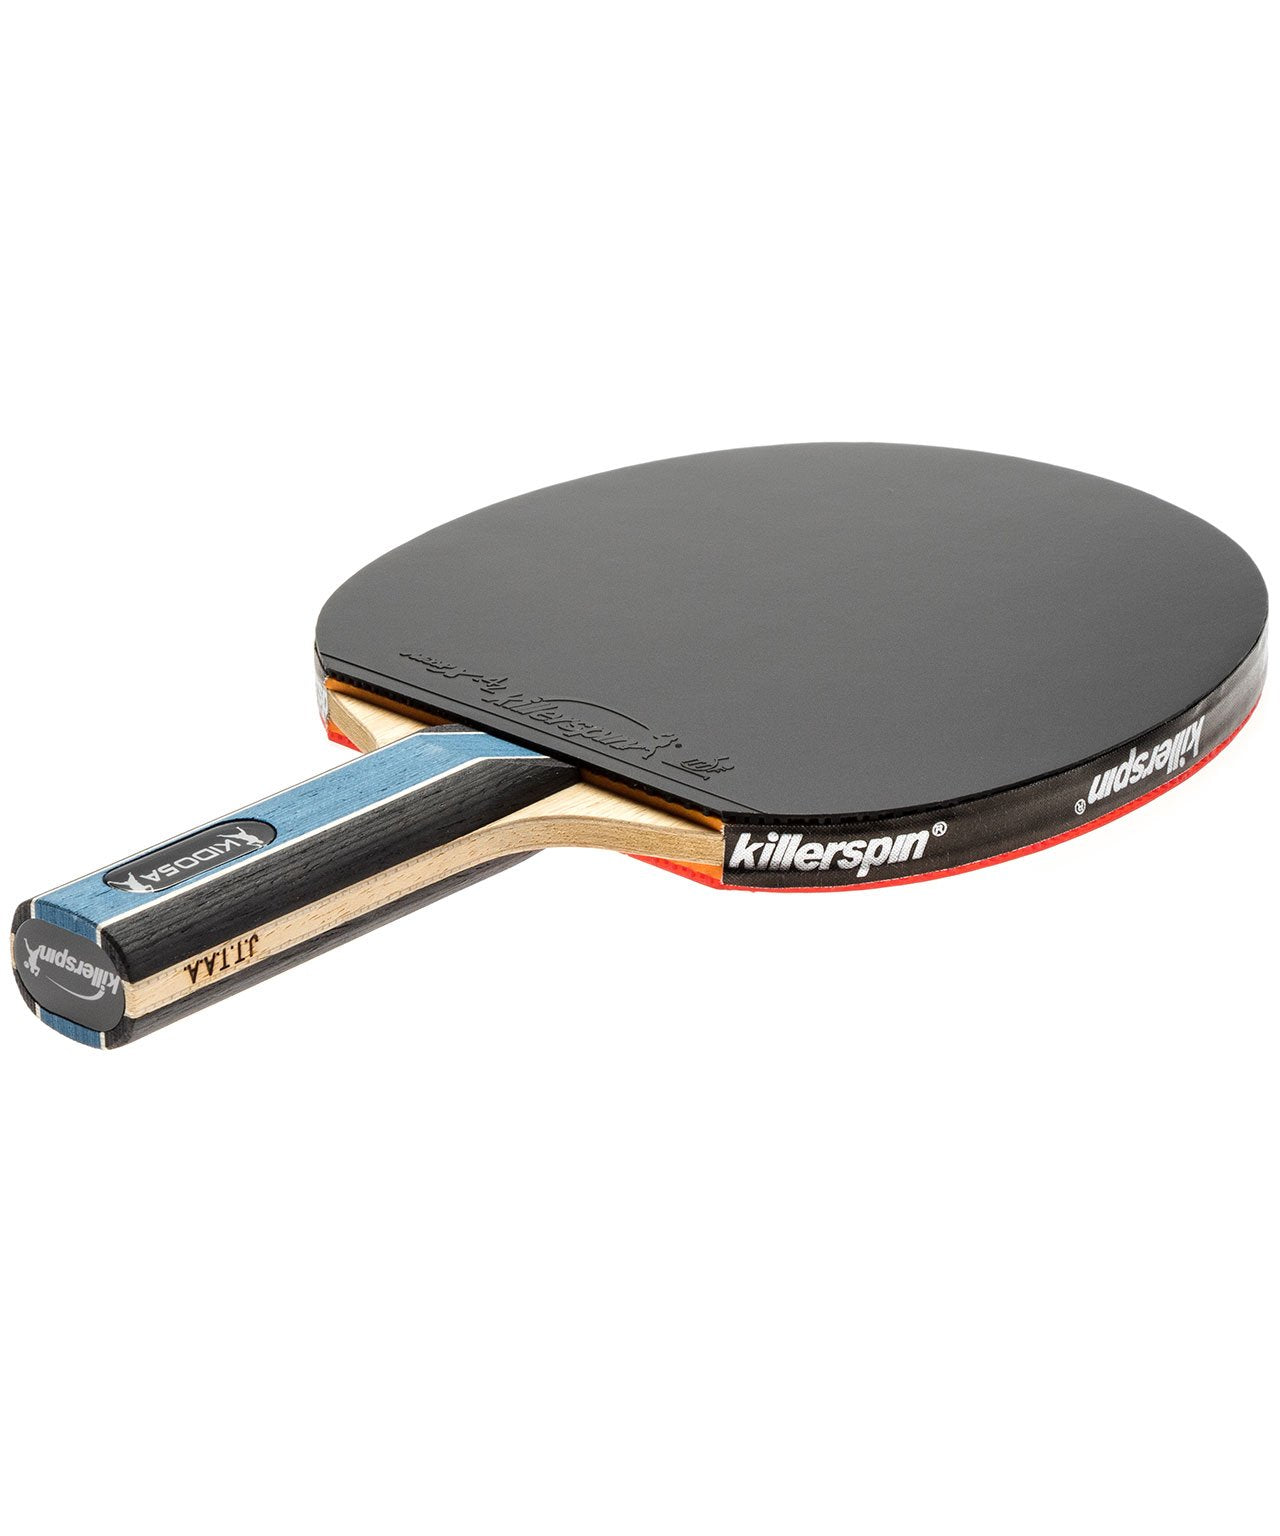 Kido 5a Rtg Ping Pong Paddle Killerspin Table Tennis